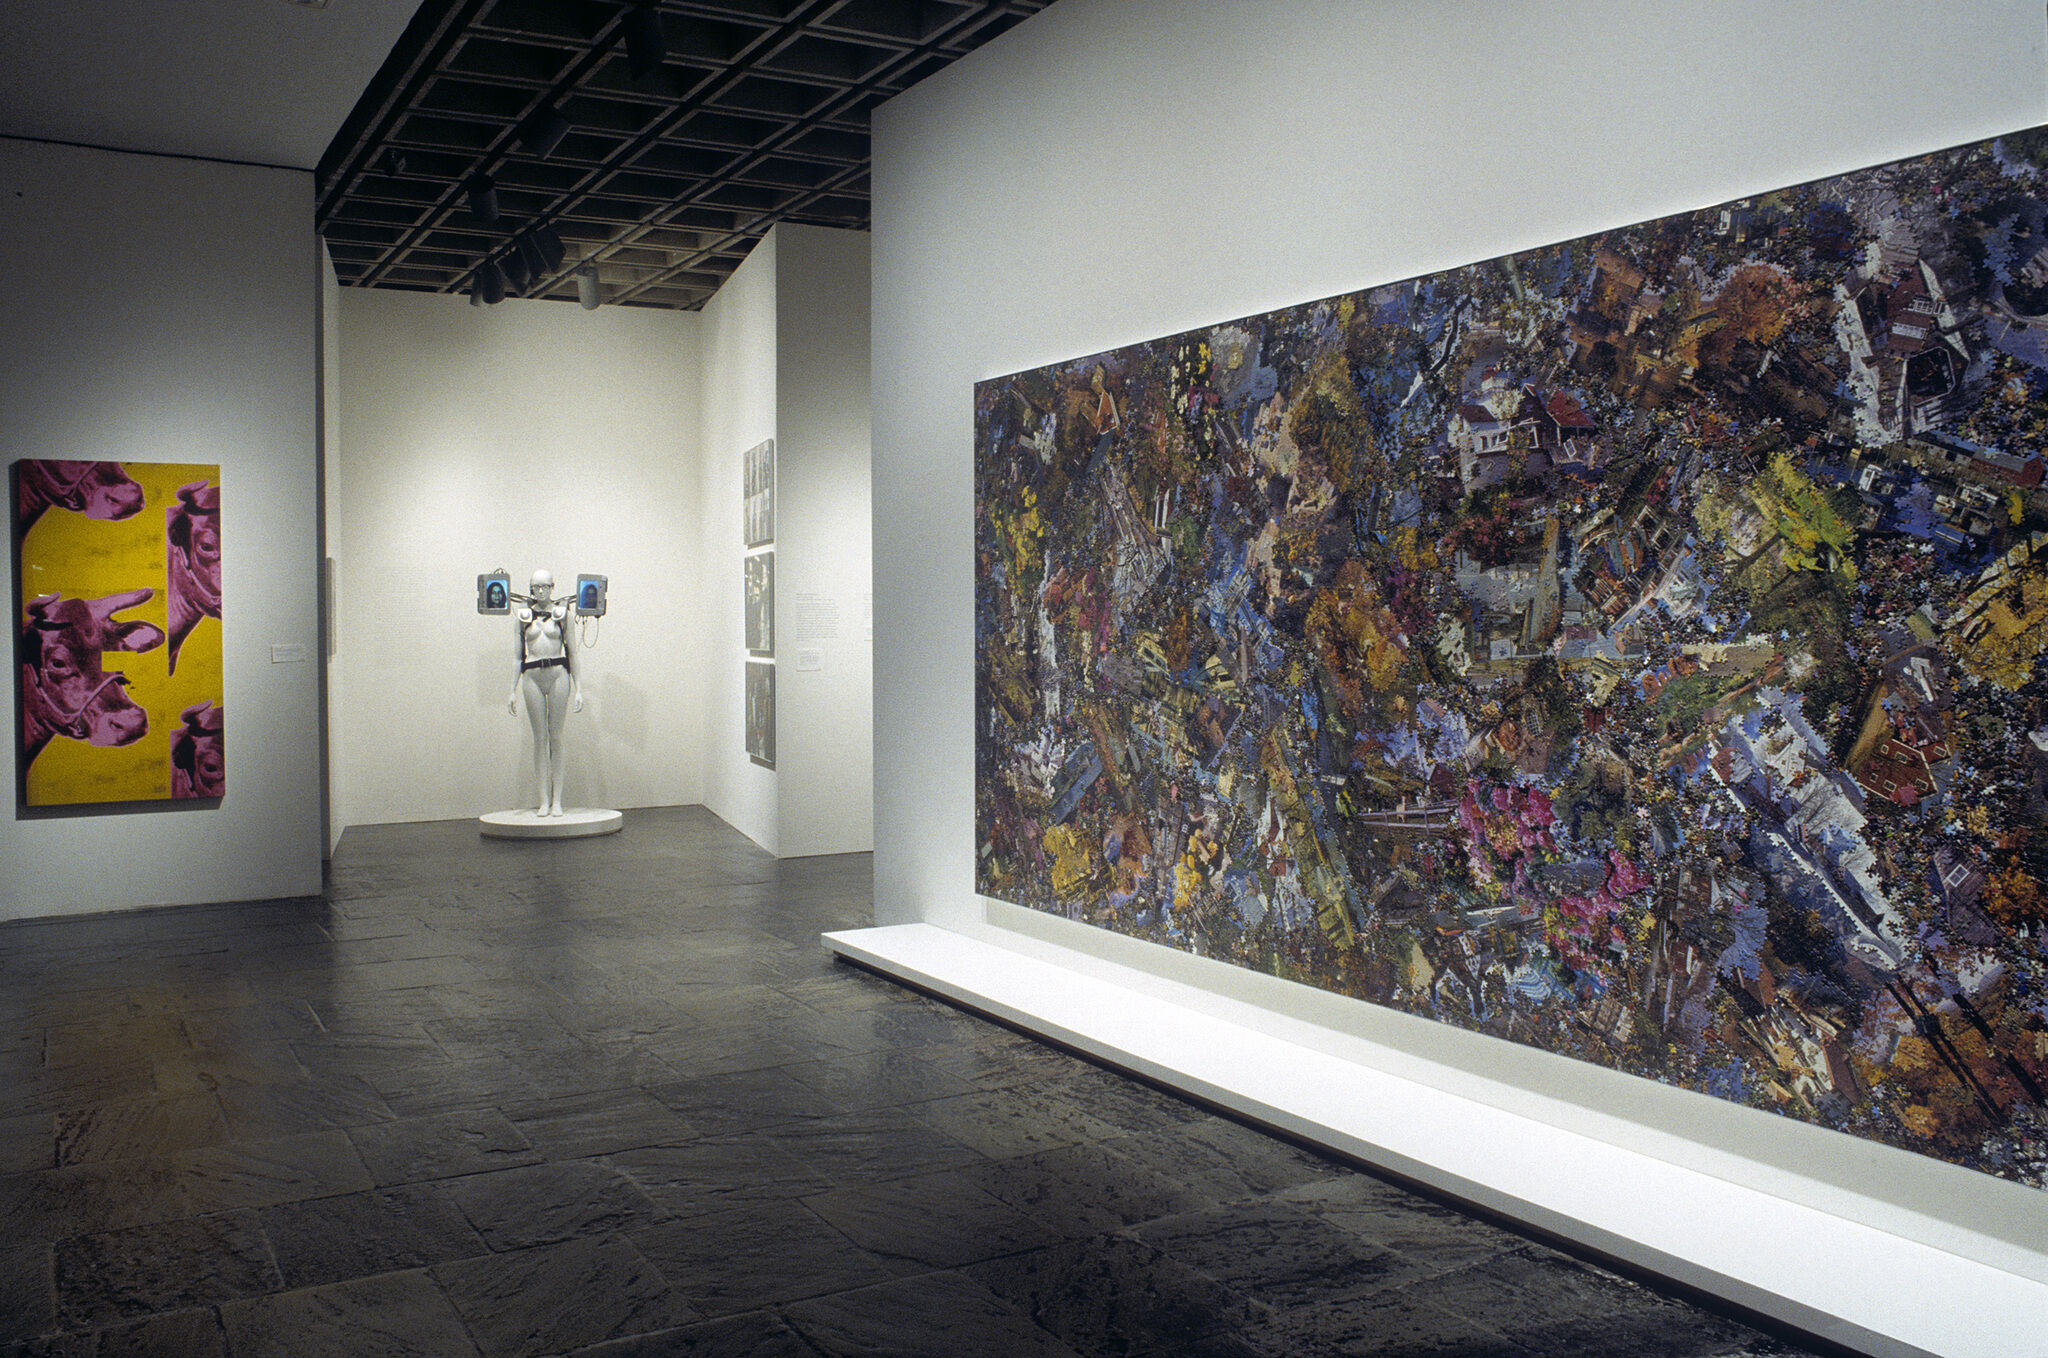 A gallery filled with works of art including paintings and a sculpture.